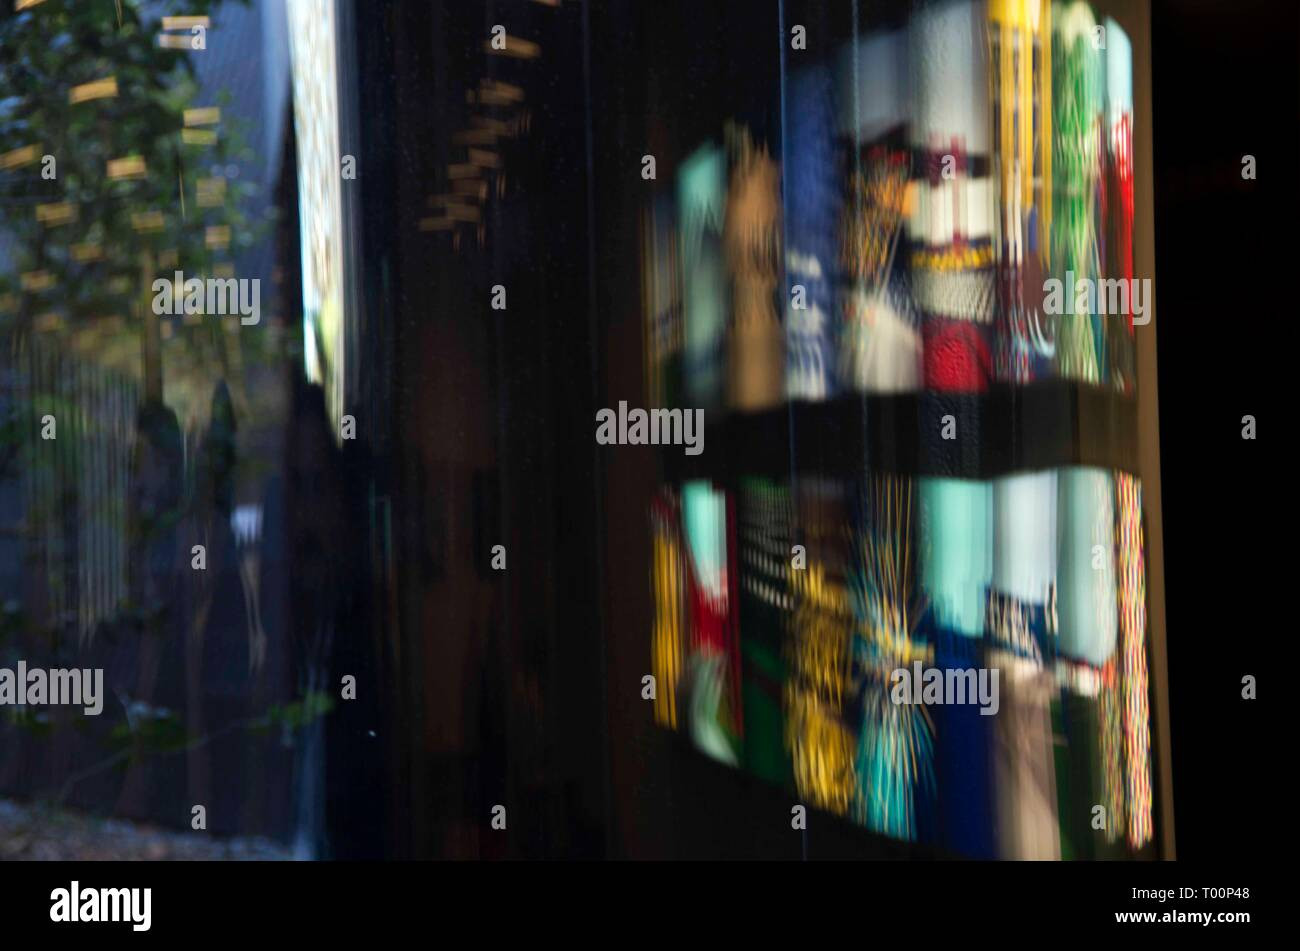 A curved window reflects an art exhibit at the De Young Museum in San Francisco, CA. - Stock Image